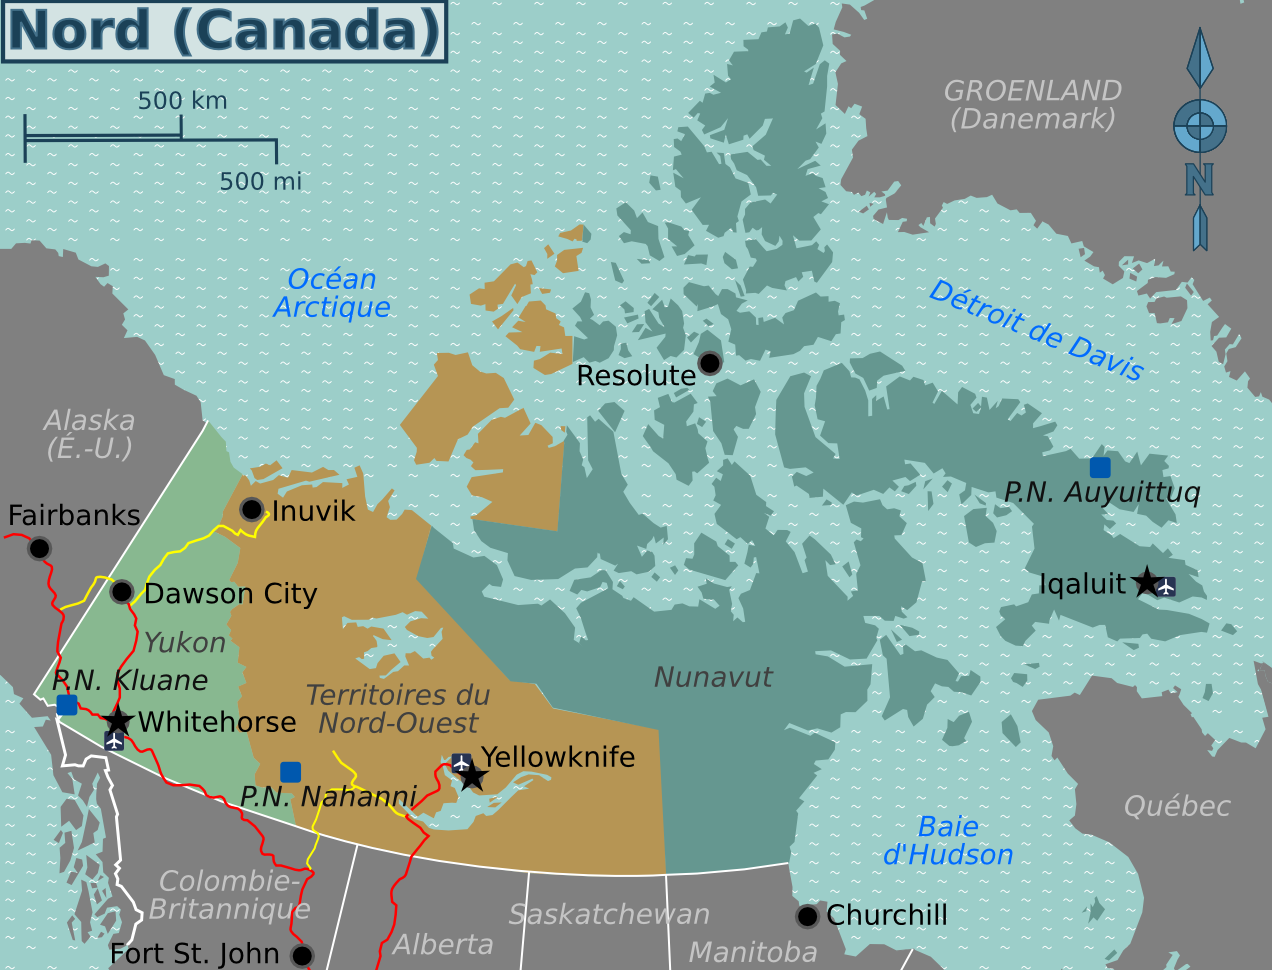 http://upload.wikimedia.org/wikipedia/commons/f/f9/Canada_north_map_(fr).png